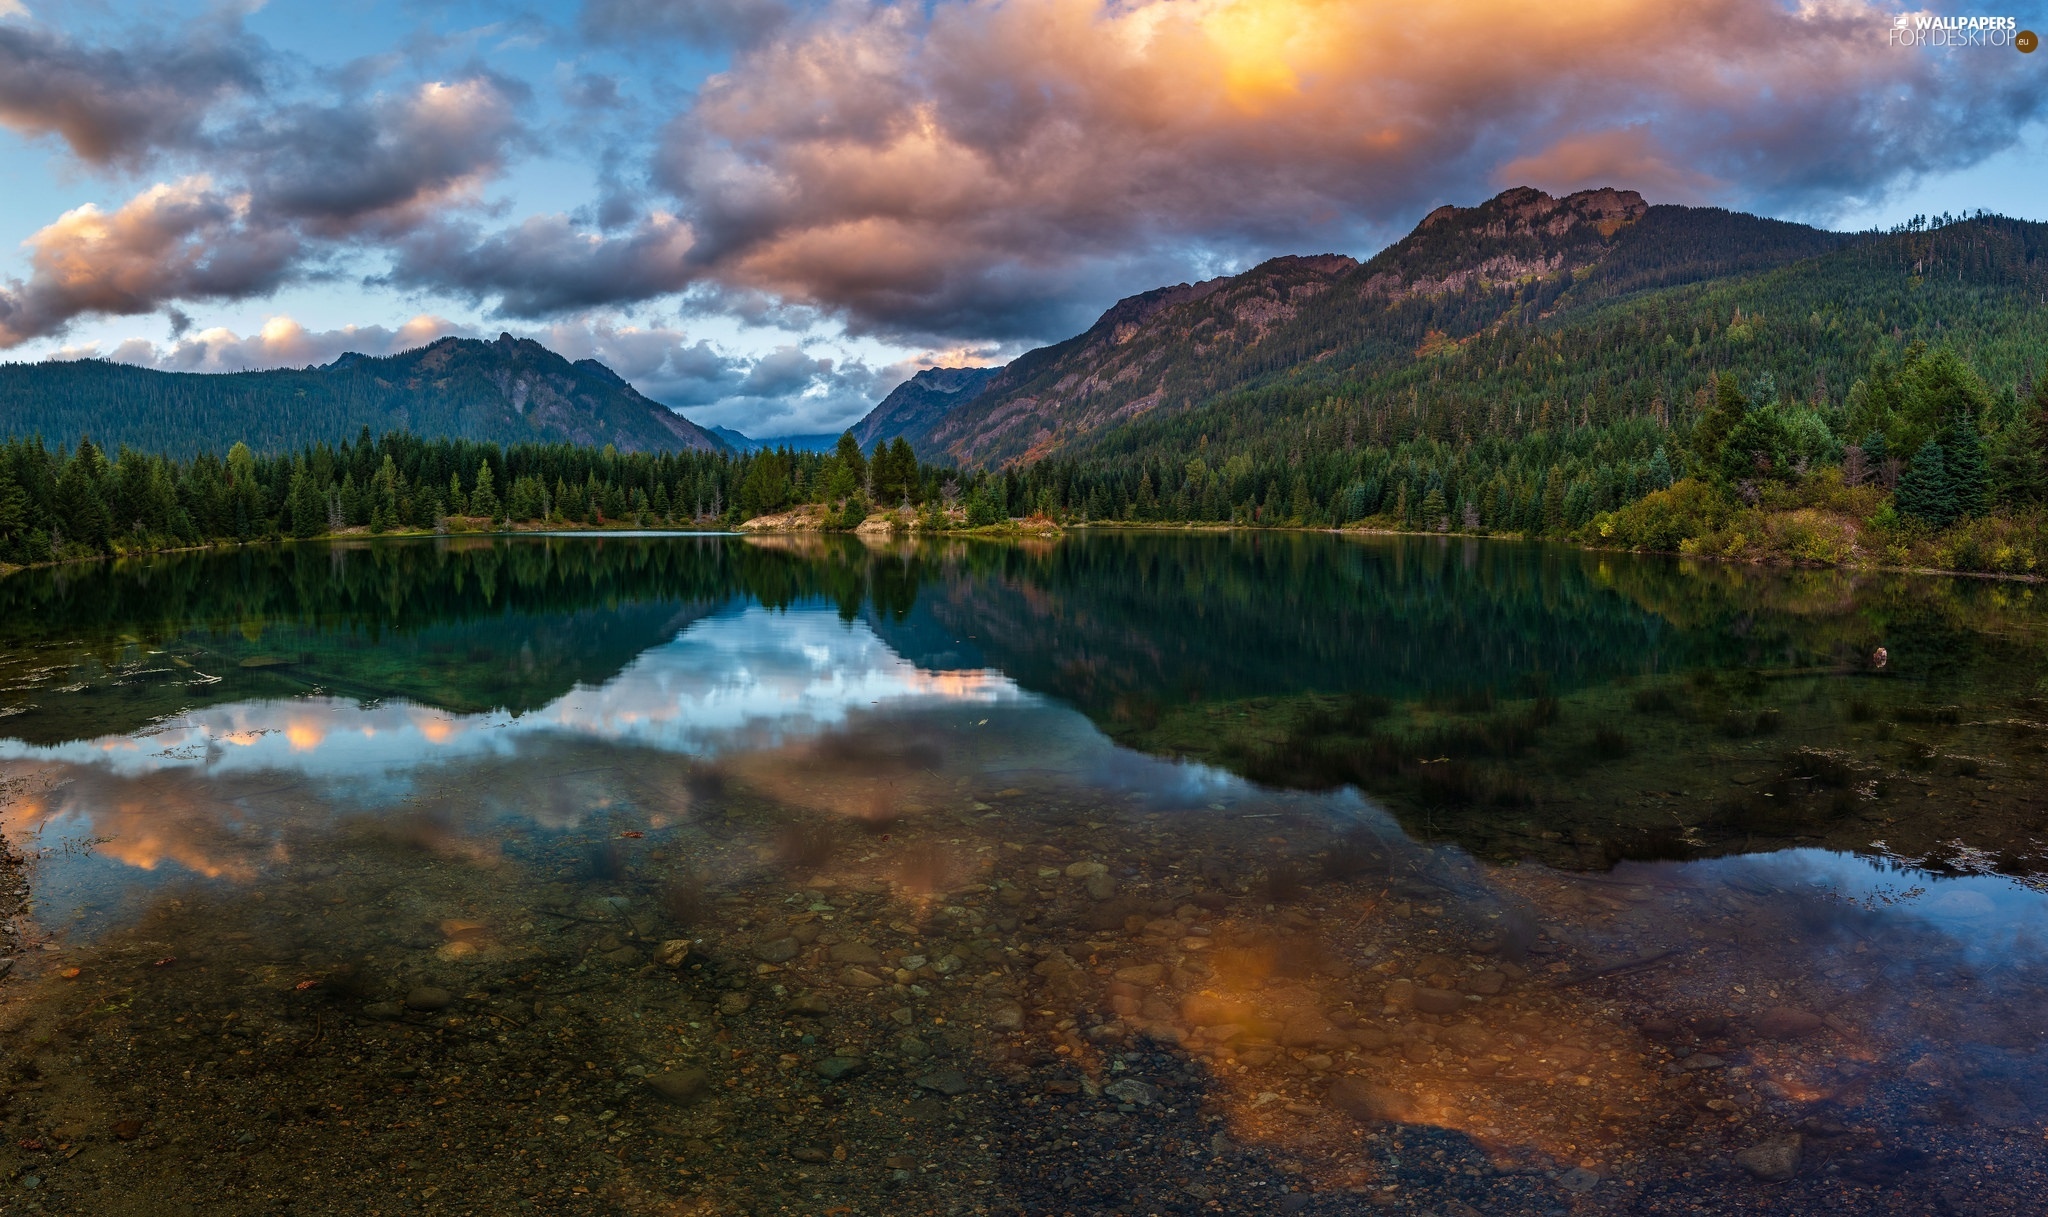 viewes, lake, clouds, trees, Mountains, forest, reflection